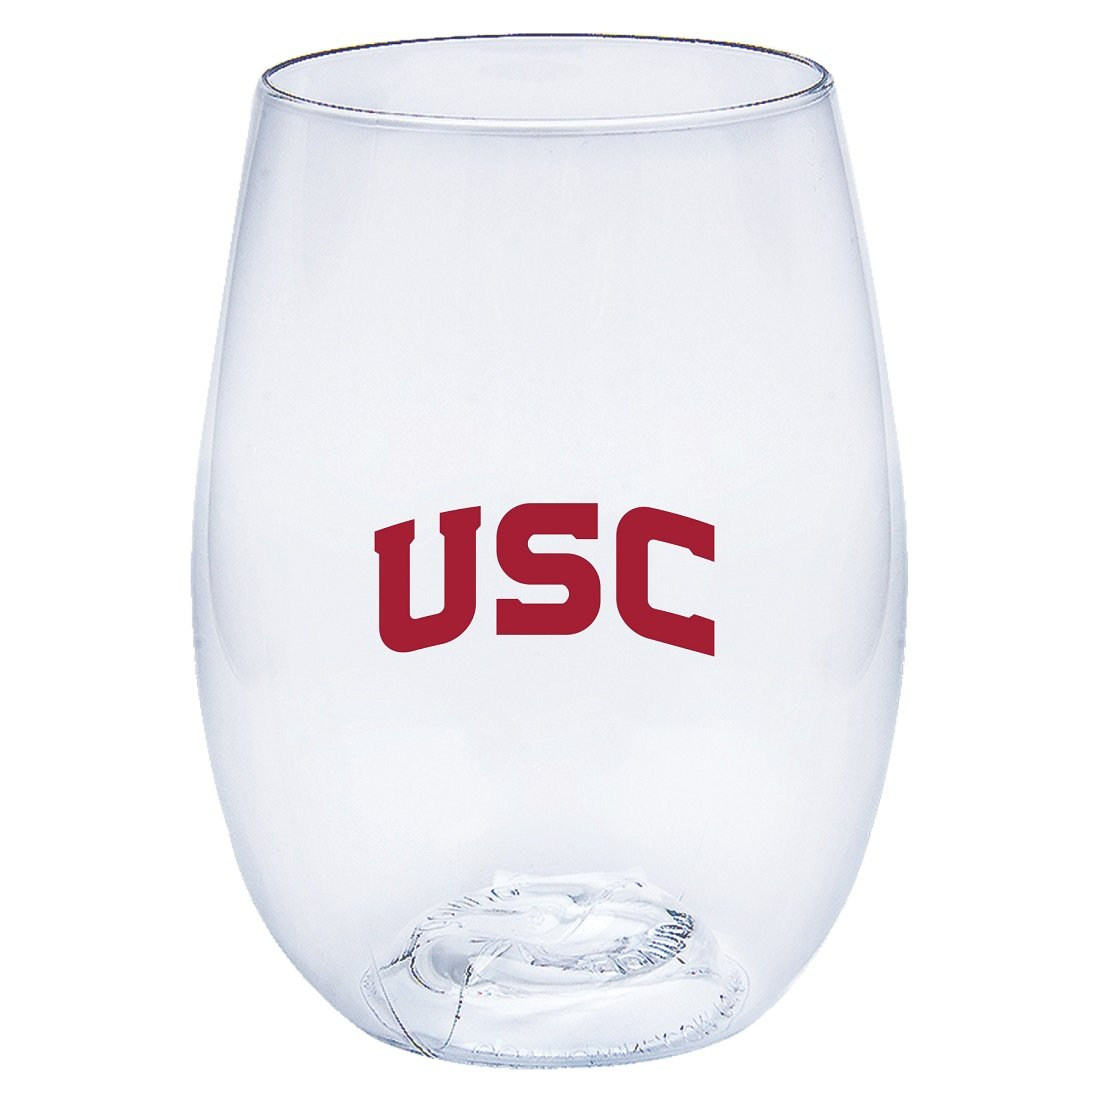 University of Southern California Trojans Govino Shatterproof Wine or Beverage Glass